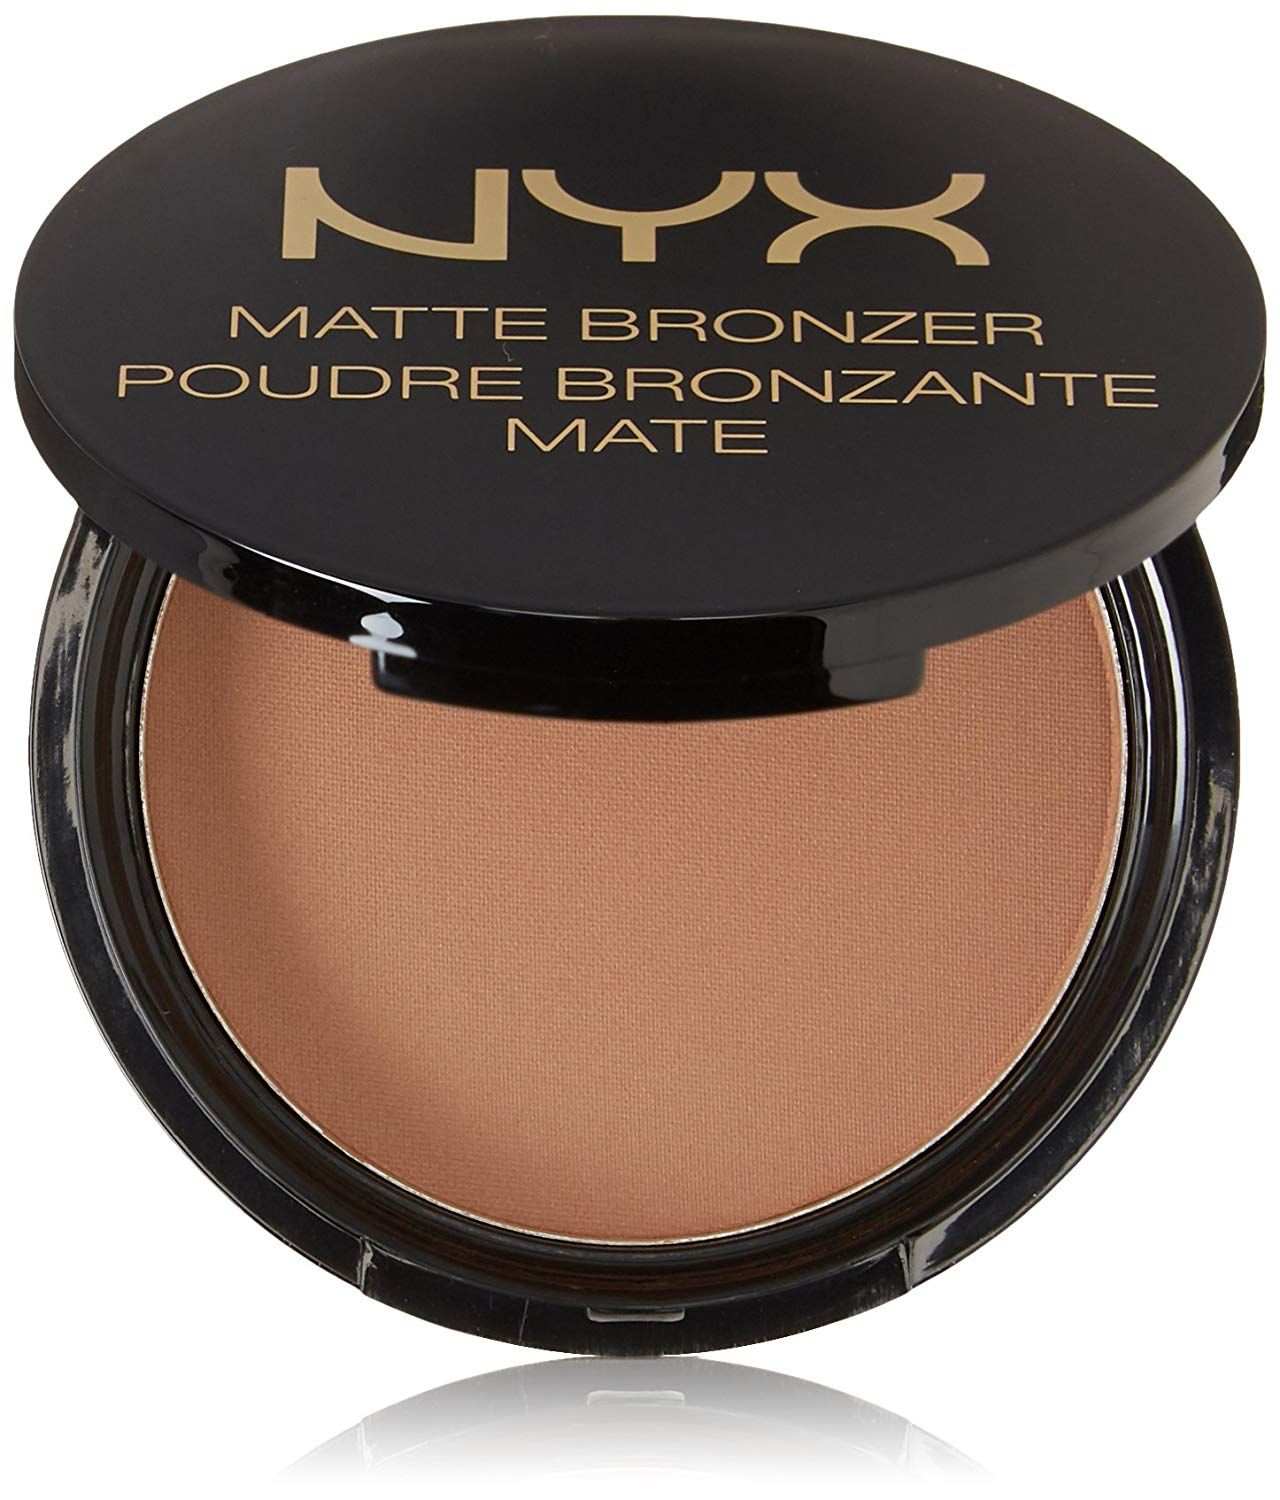 Basic Makeup Essentials For Beginners Lucytriesit Com Bronzer Makeup Matte Bronzer Nyx Professional Makeup